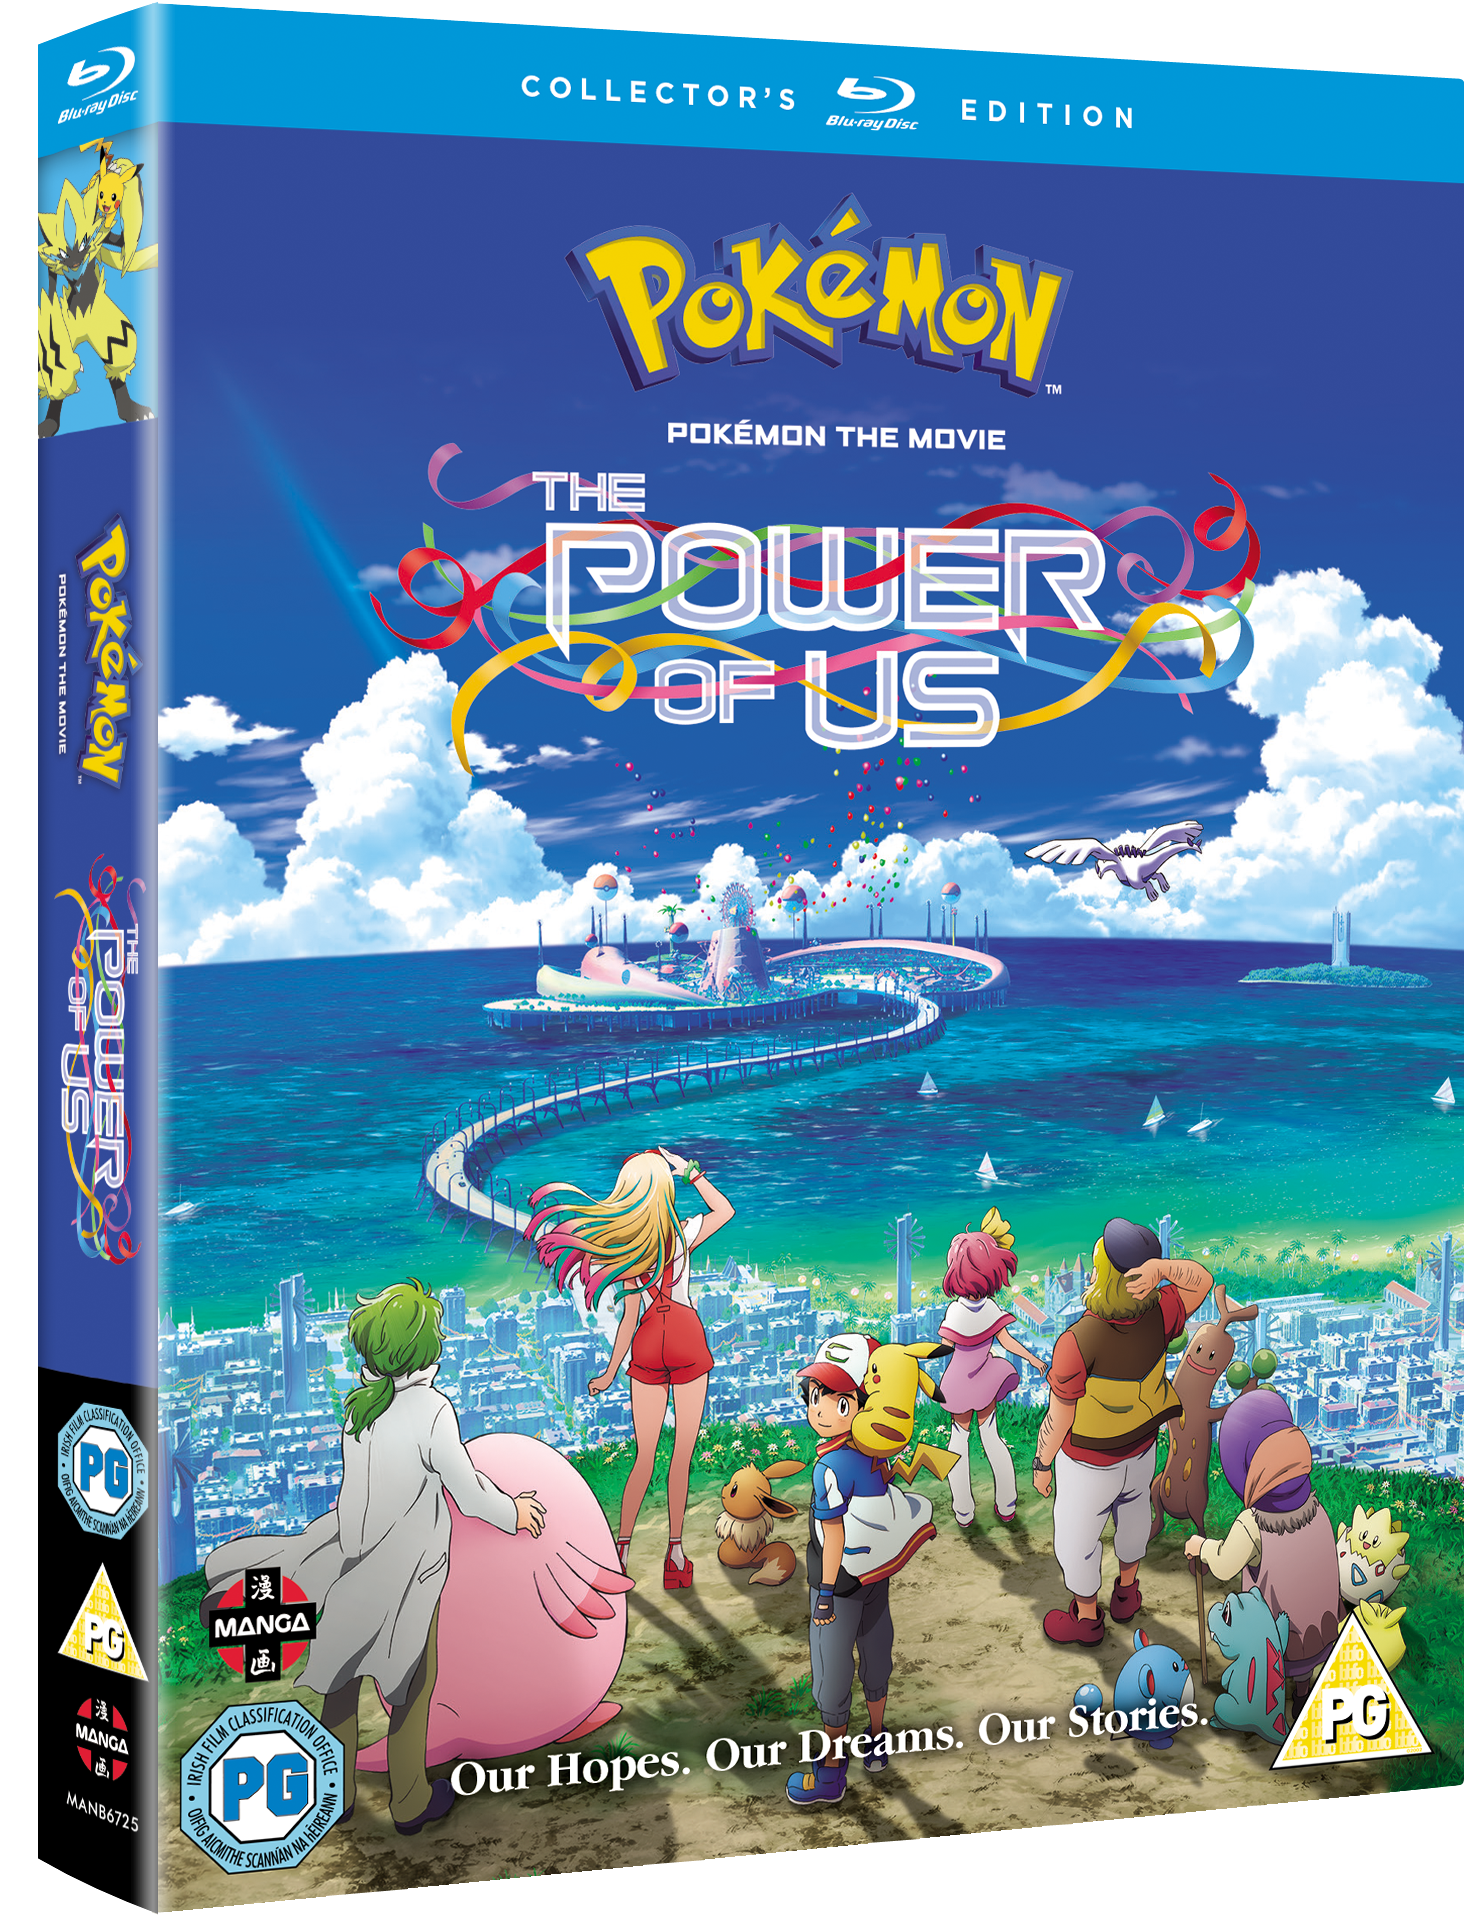 Pokemon The Movie The Power Of Us Review Anime Uk News